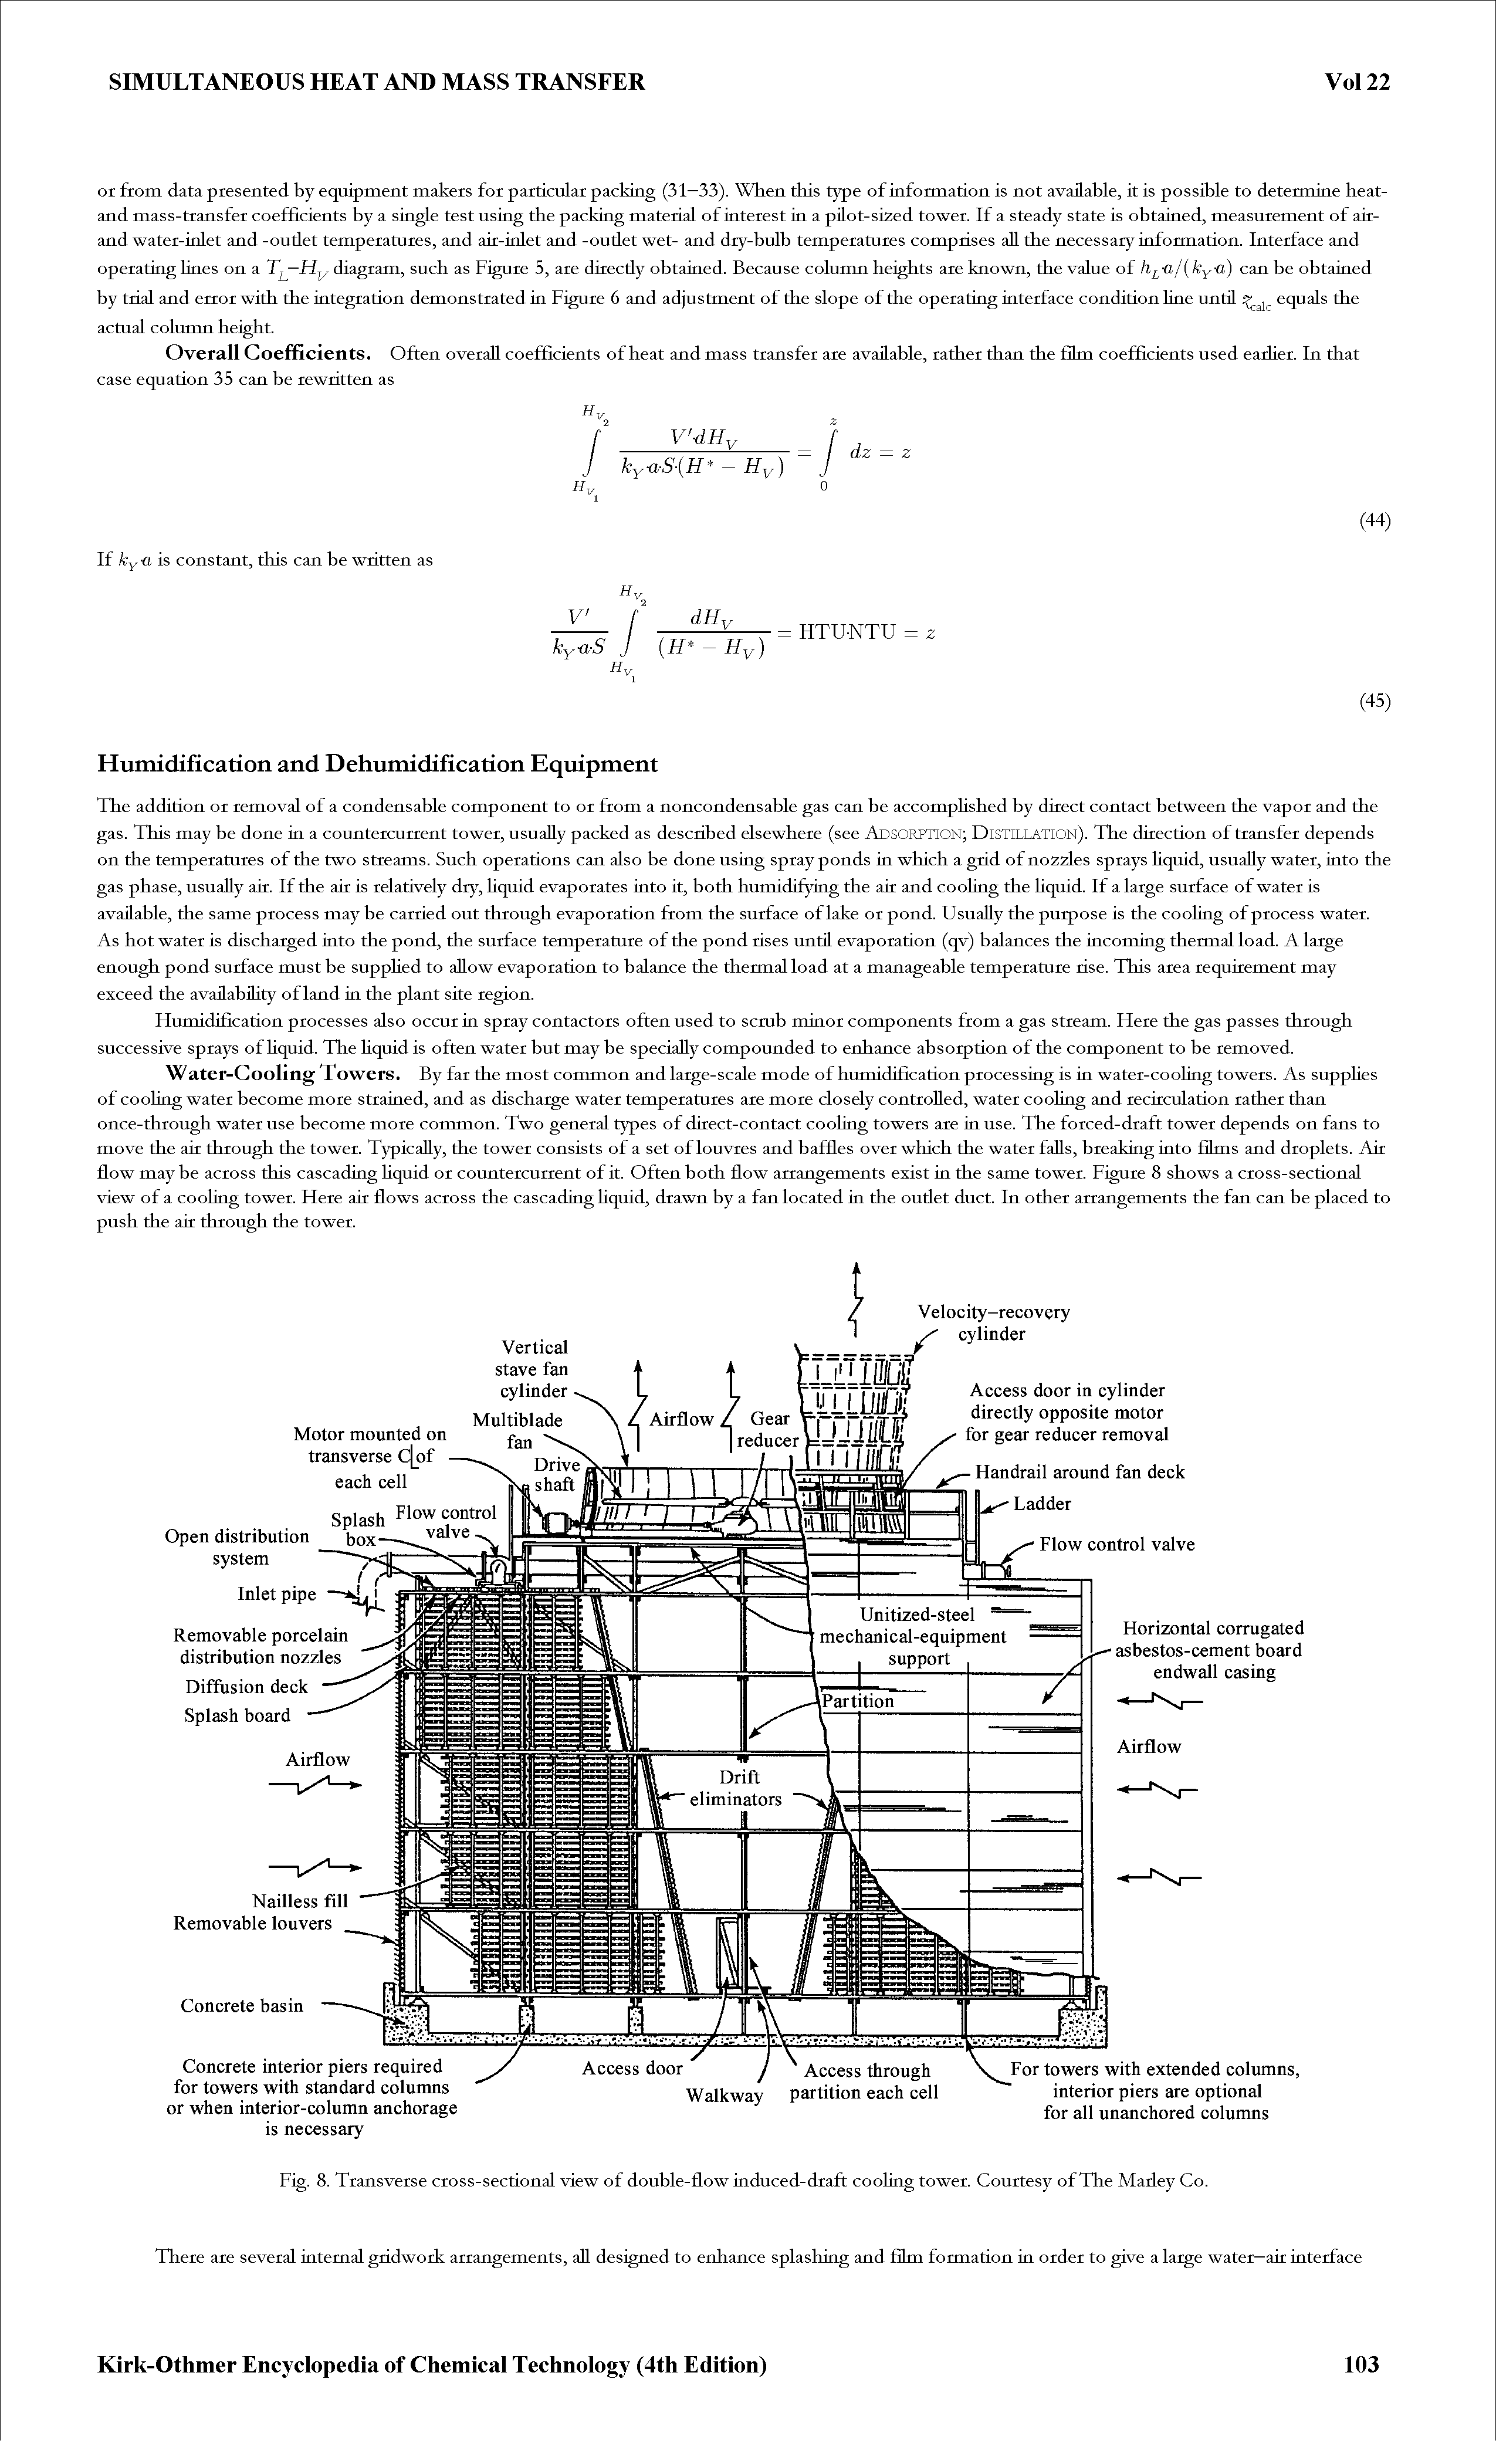 "Fig. 8. <a href=""/info/transverse_cross_section"">Transverse cross-sectional</a> view of double-flow <a href=""/info/cooling_tower_induced_draft"">induced-draft cooling tower</a>. Courtesy of The Madey Co."